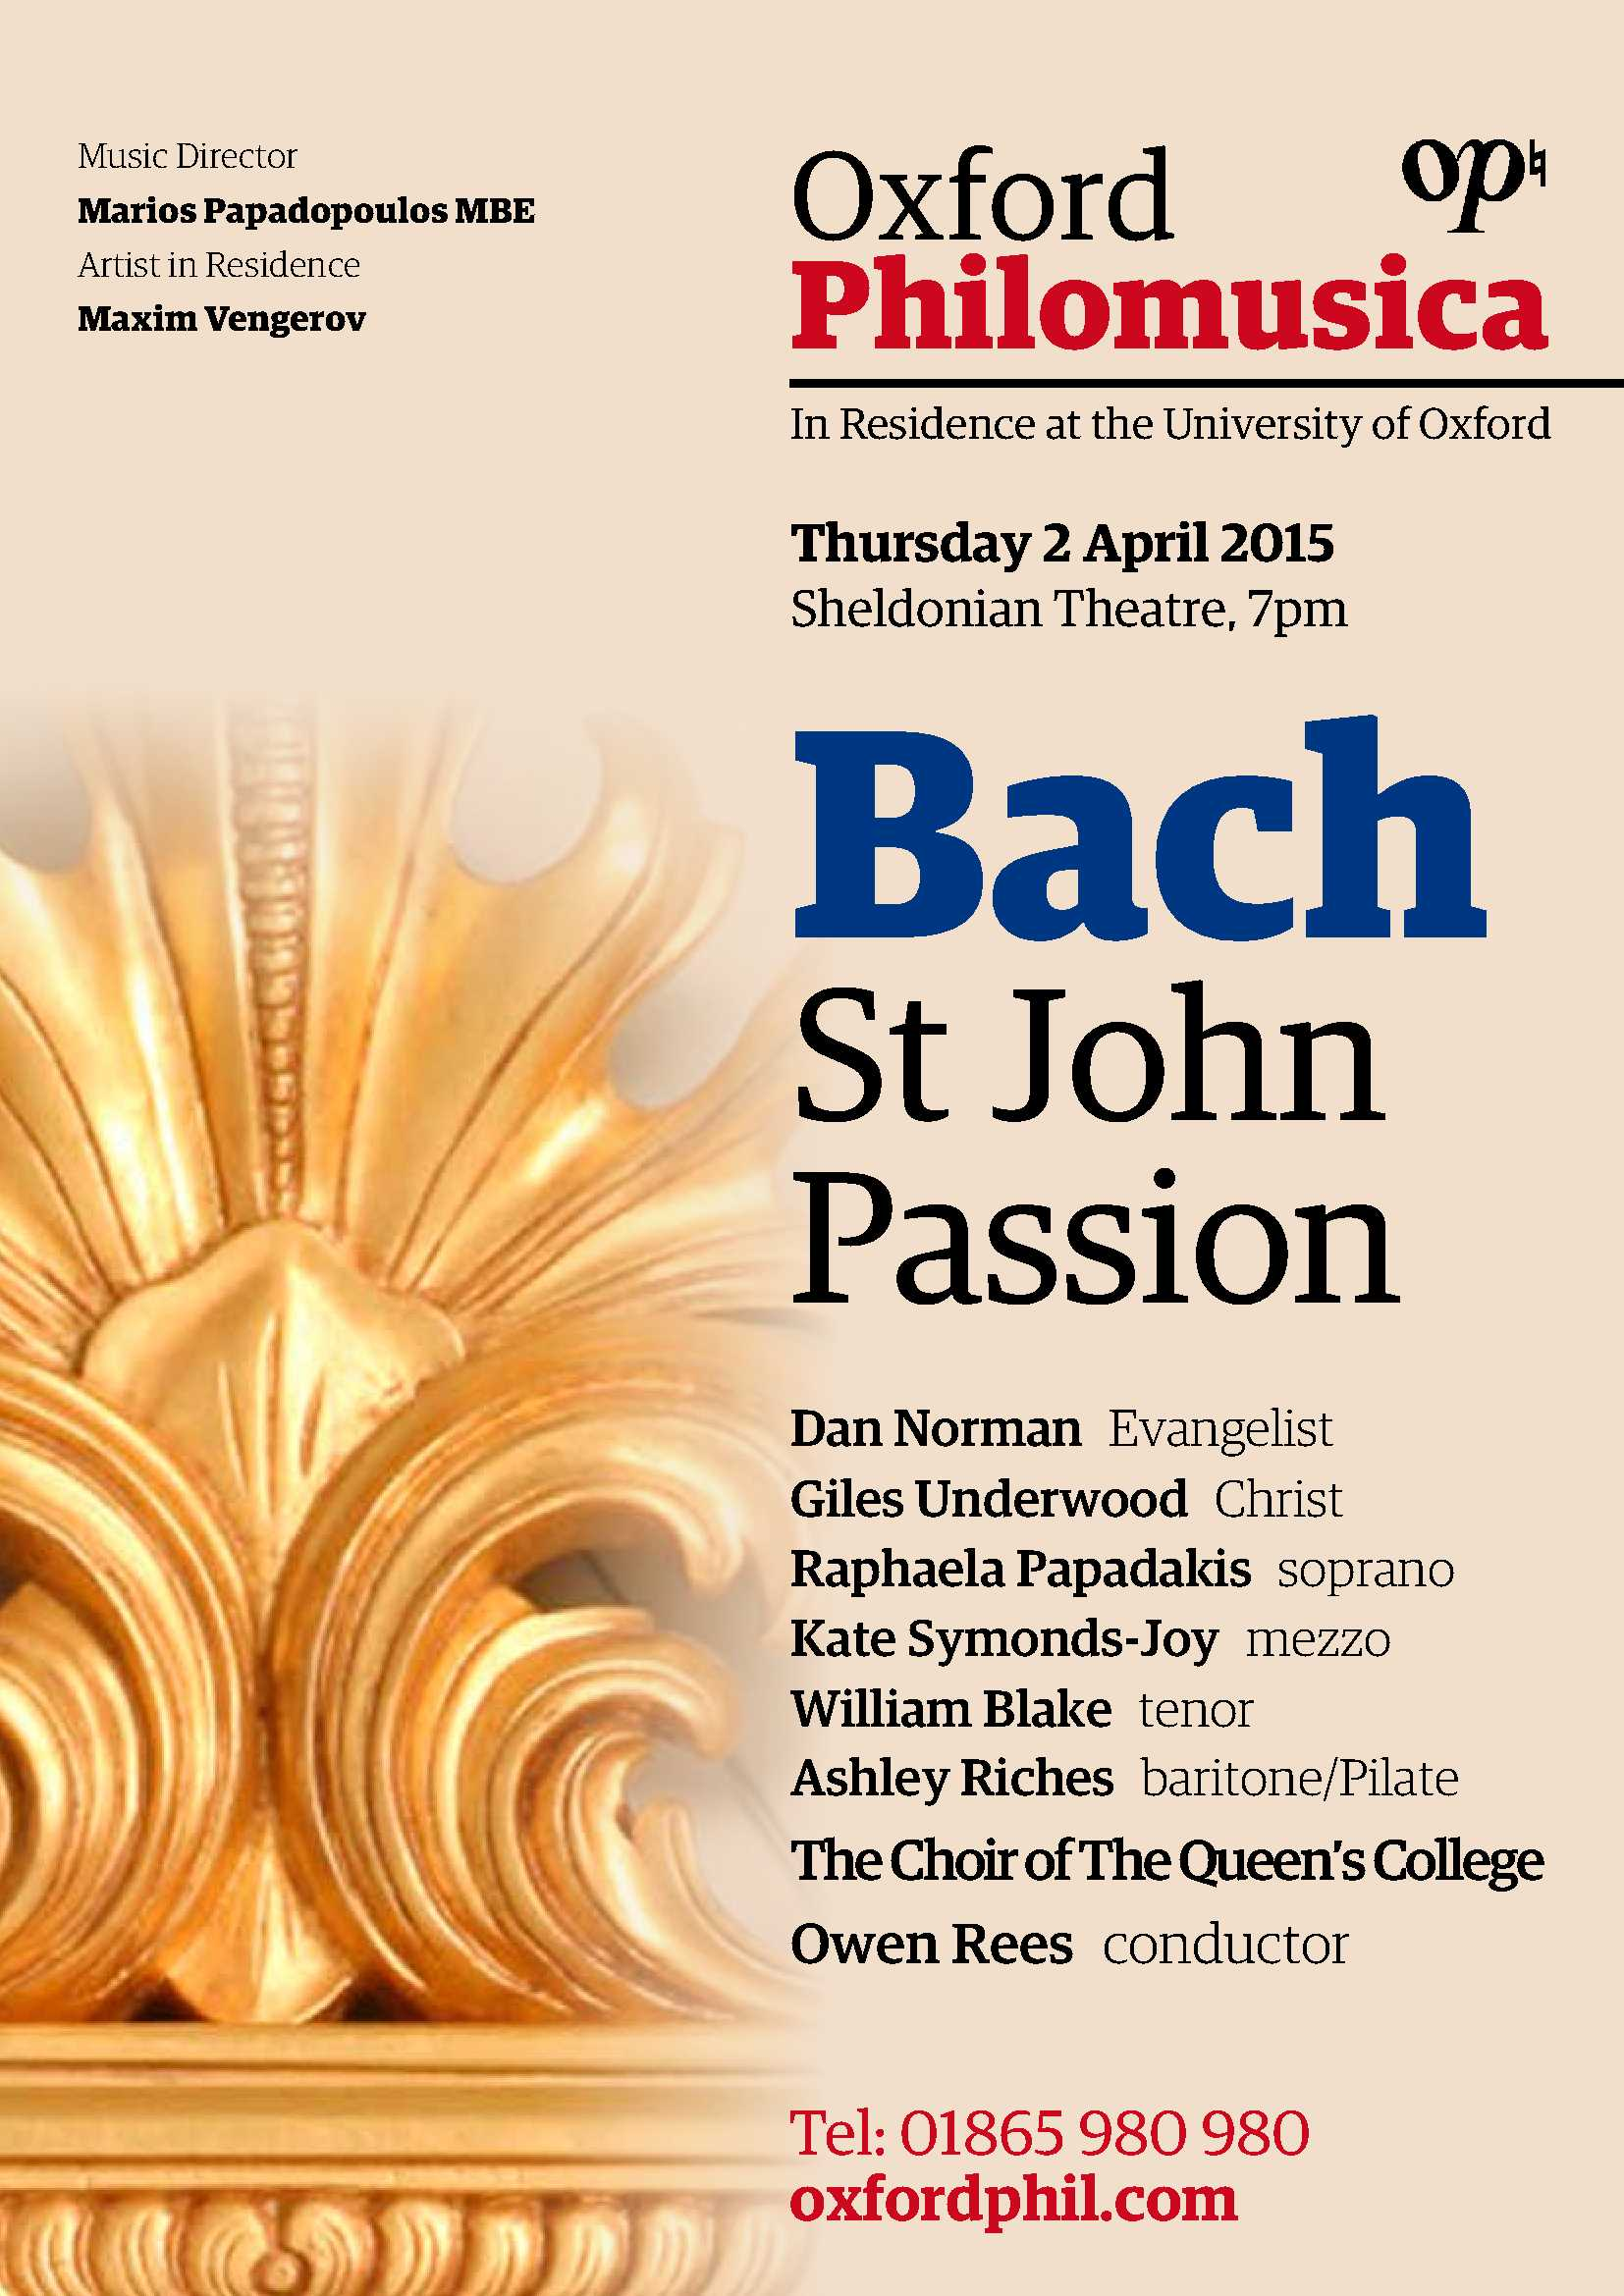 St John Passion - 2nd April 15.jpg